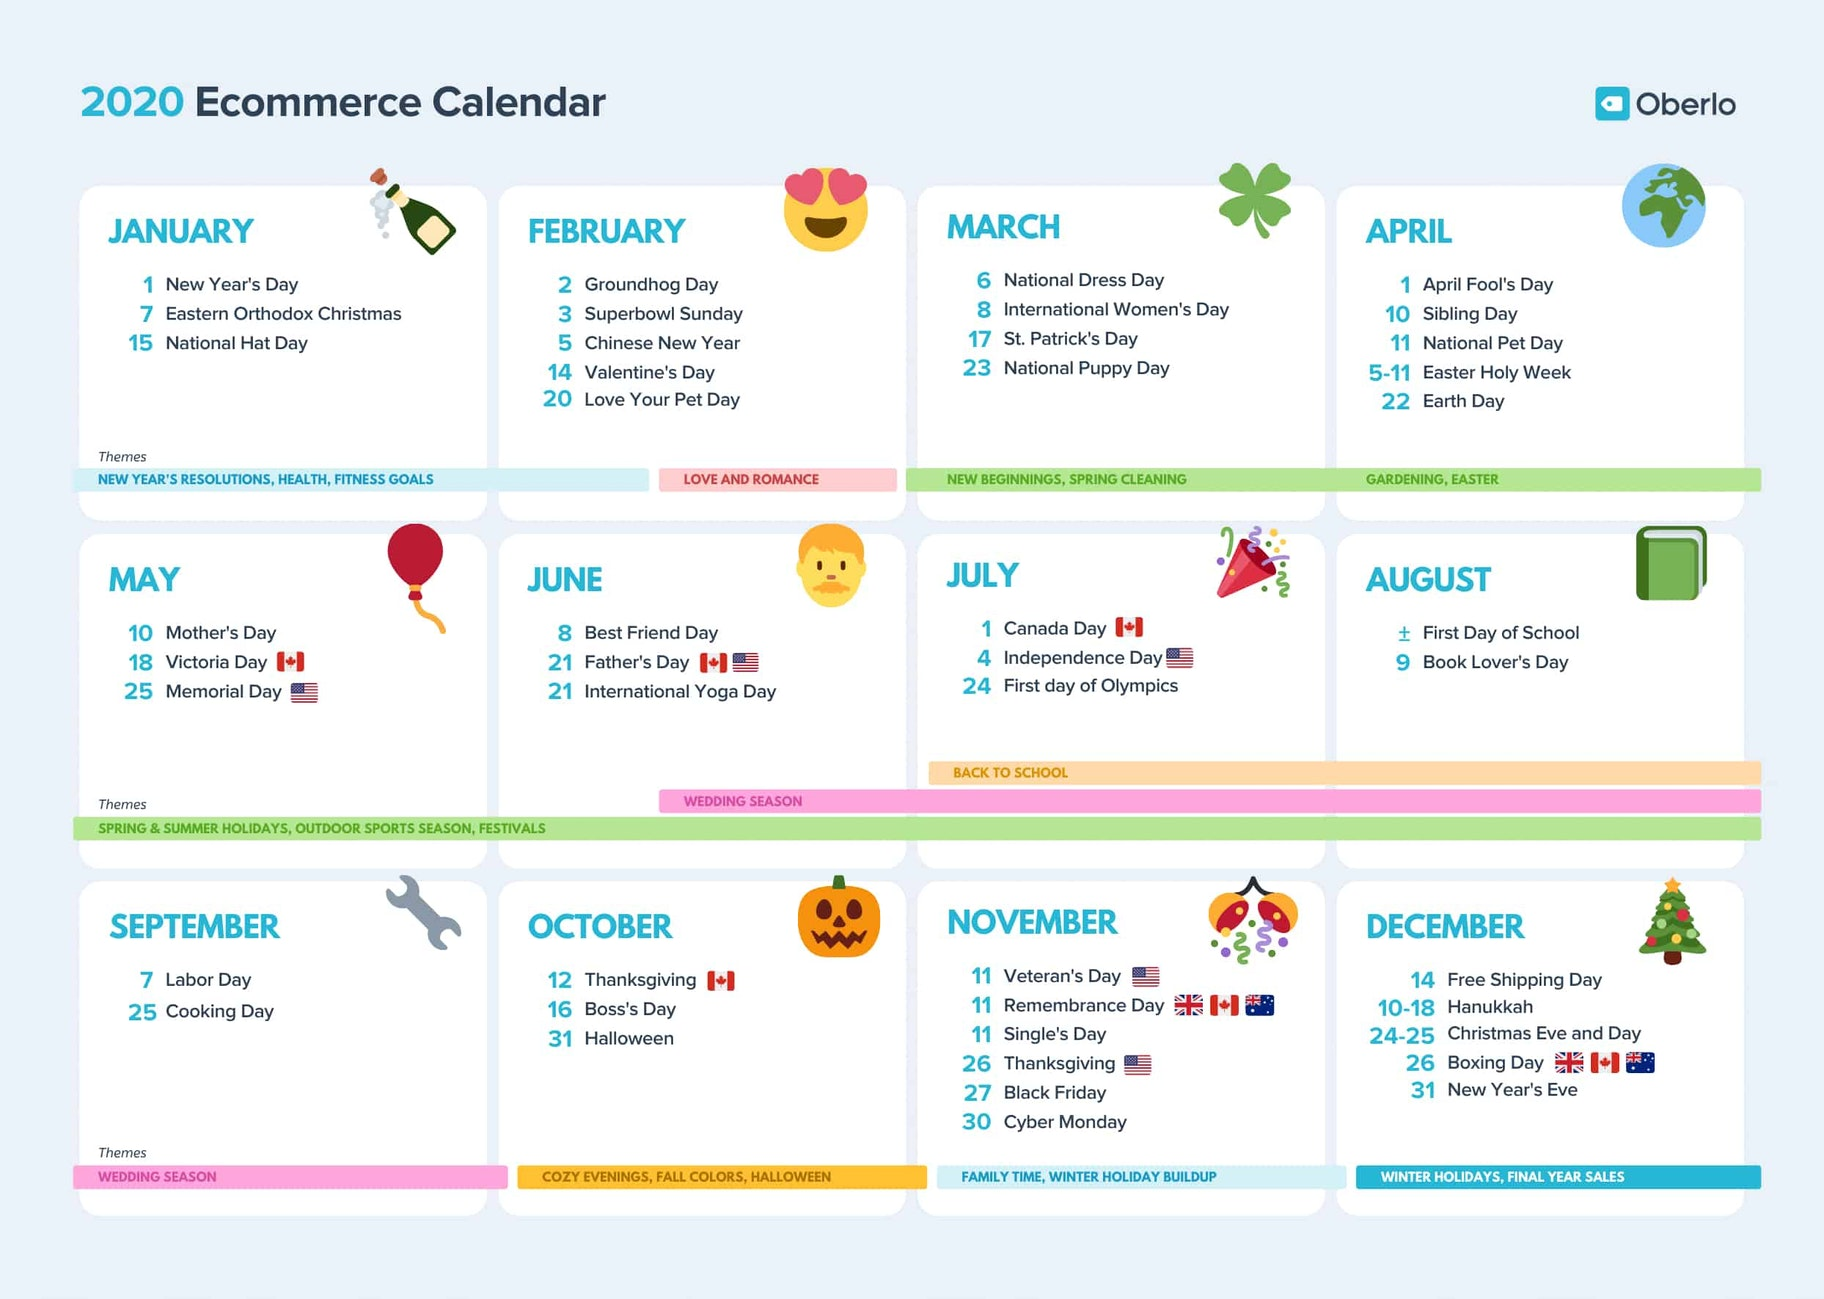 Oberlo 2020 ecommerce marketing calendar